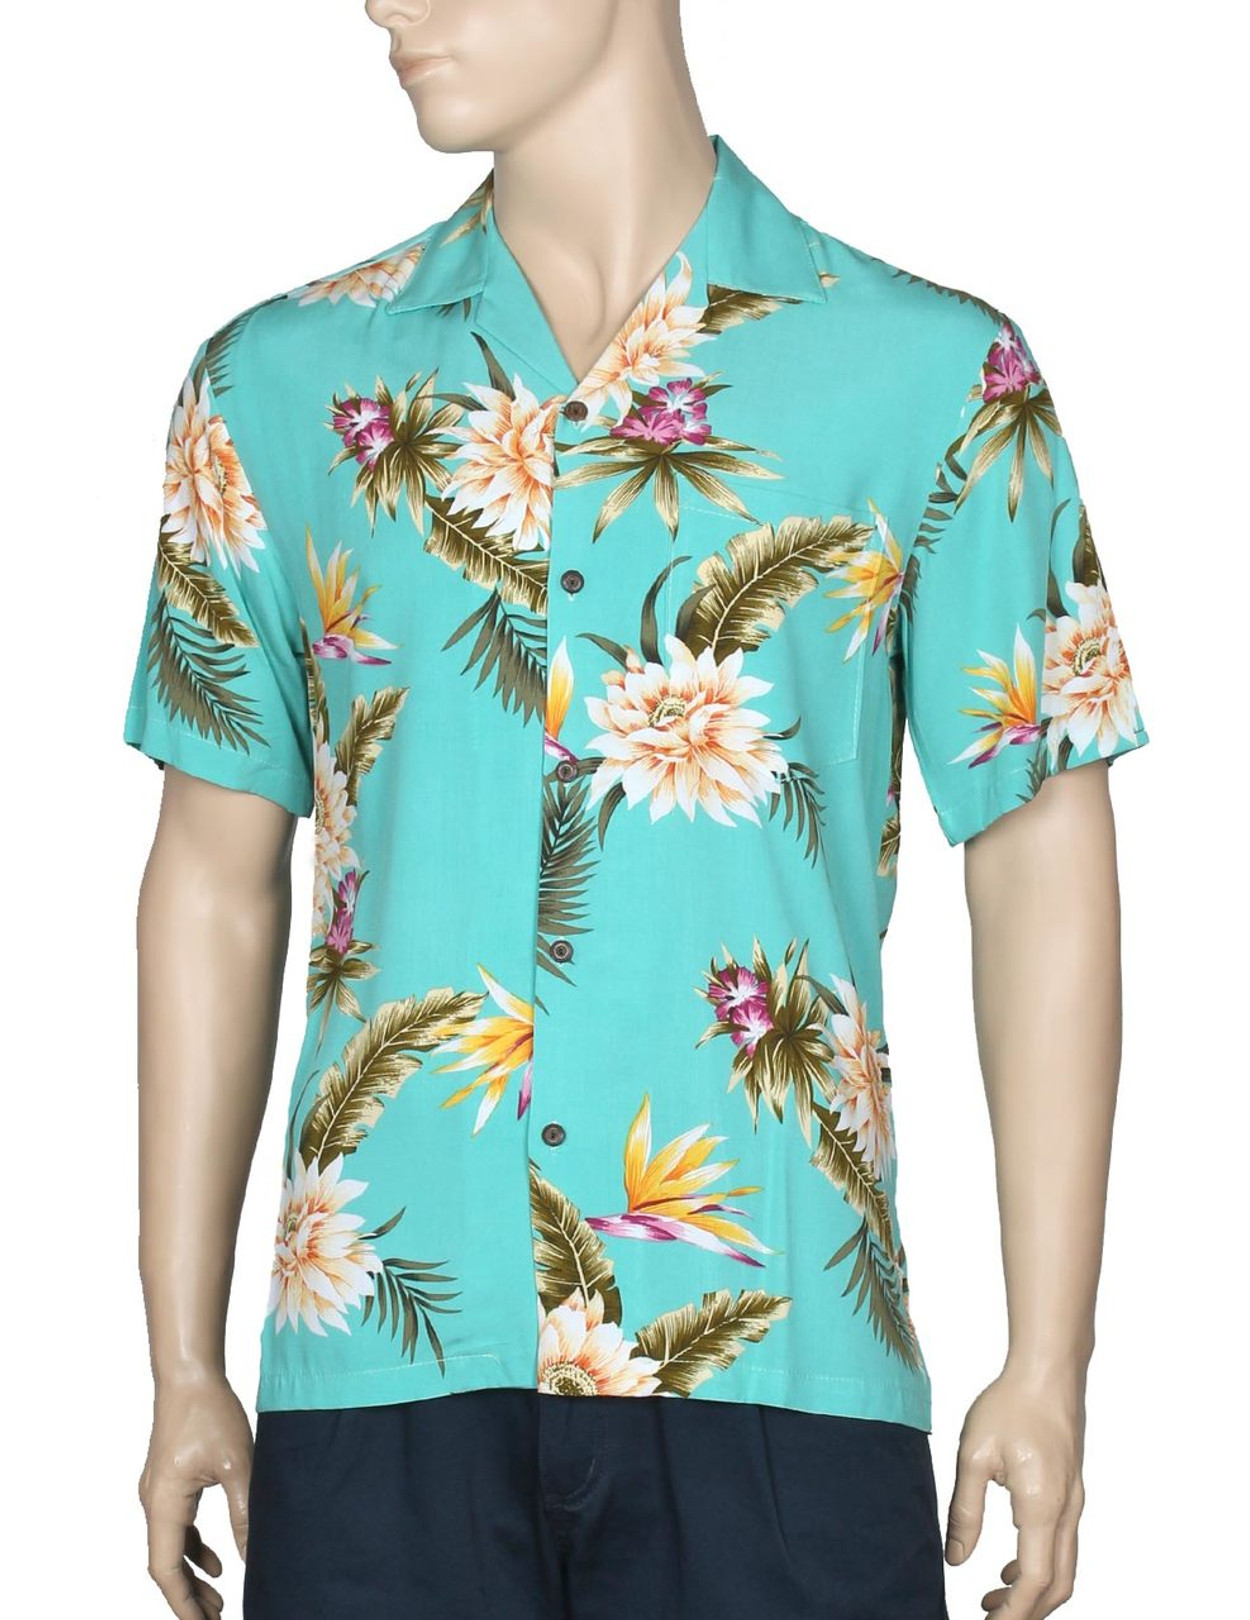 03fd81a1 Rayon Hawaiian Shirt for Men Island Ceres 100% Rayon Soft Fabric Seamless  Matching left pocket